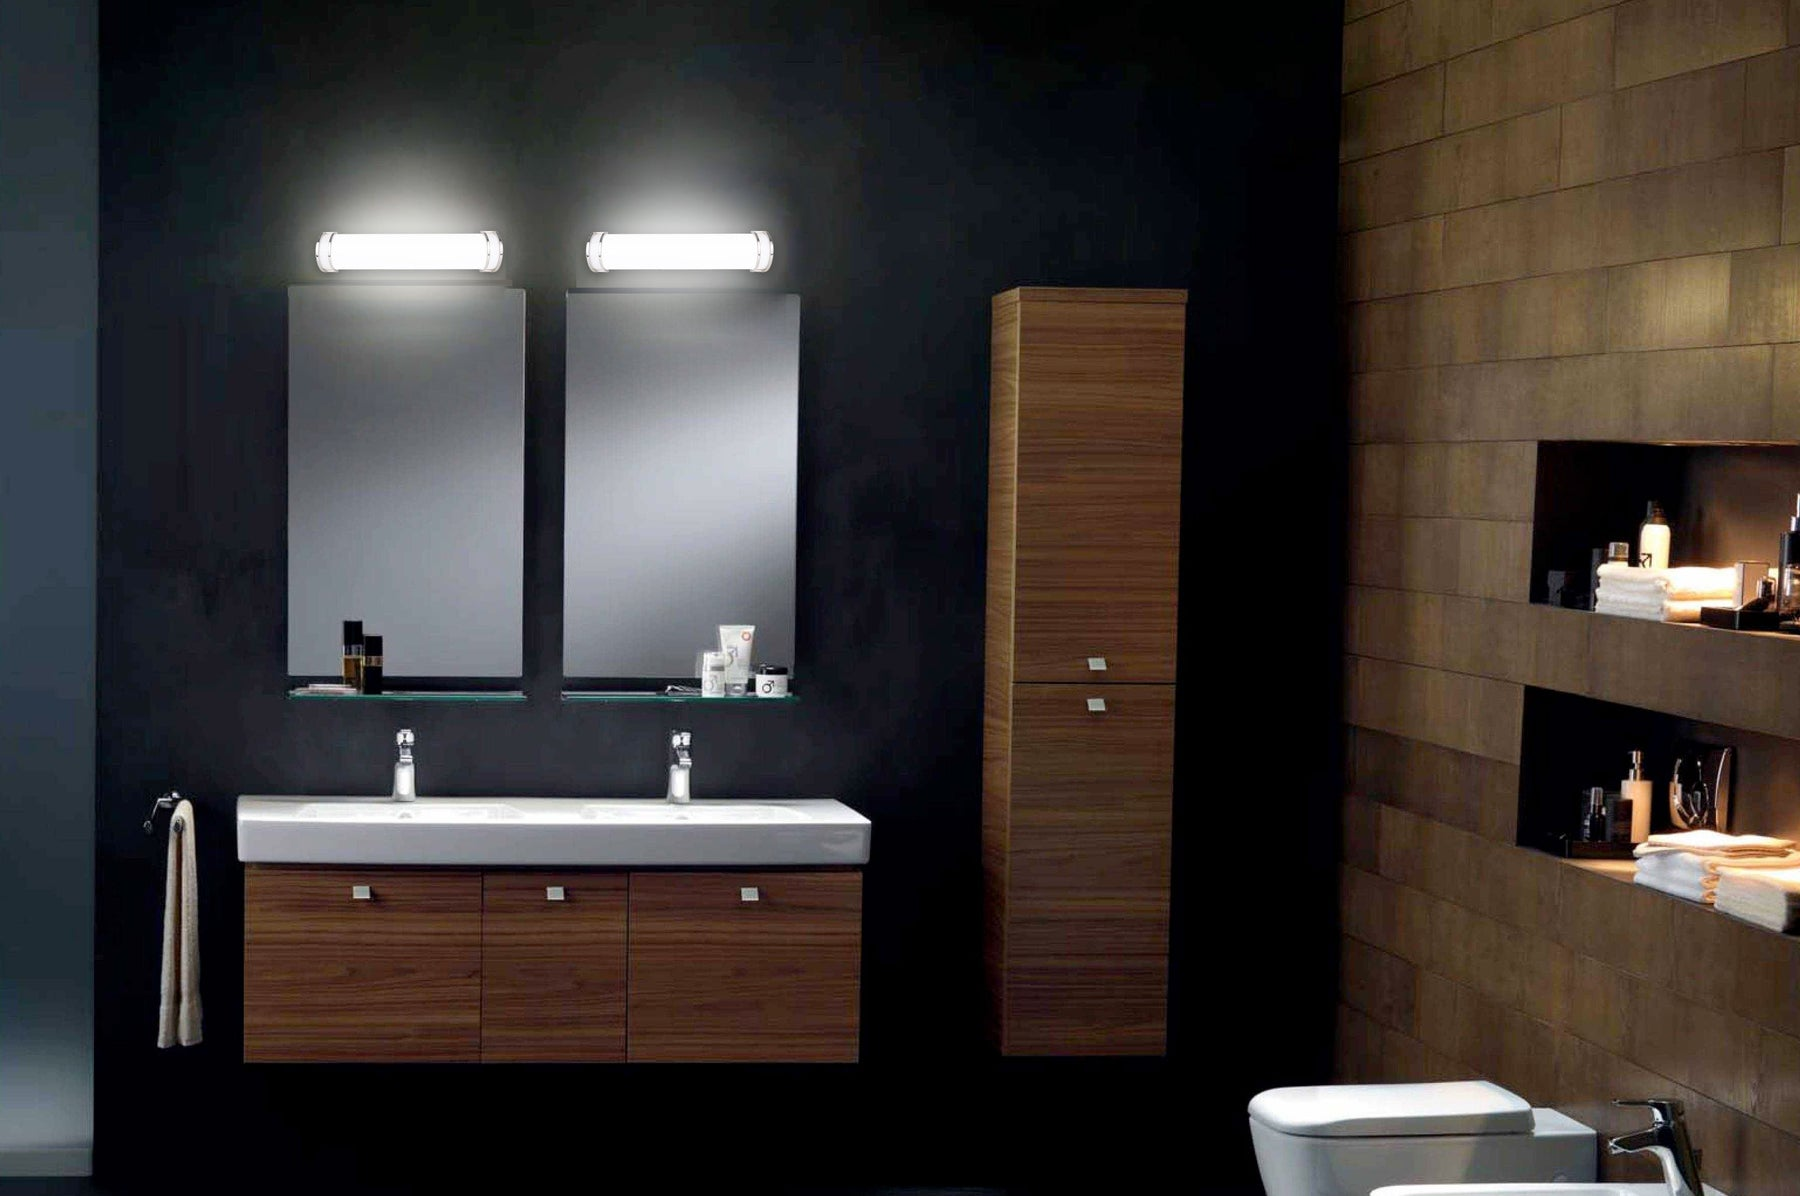 LED Lighting: Make Use of Your Bathroom for All Its Purposes